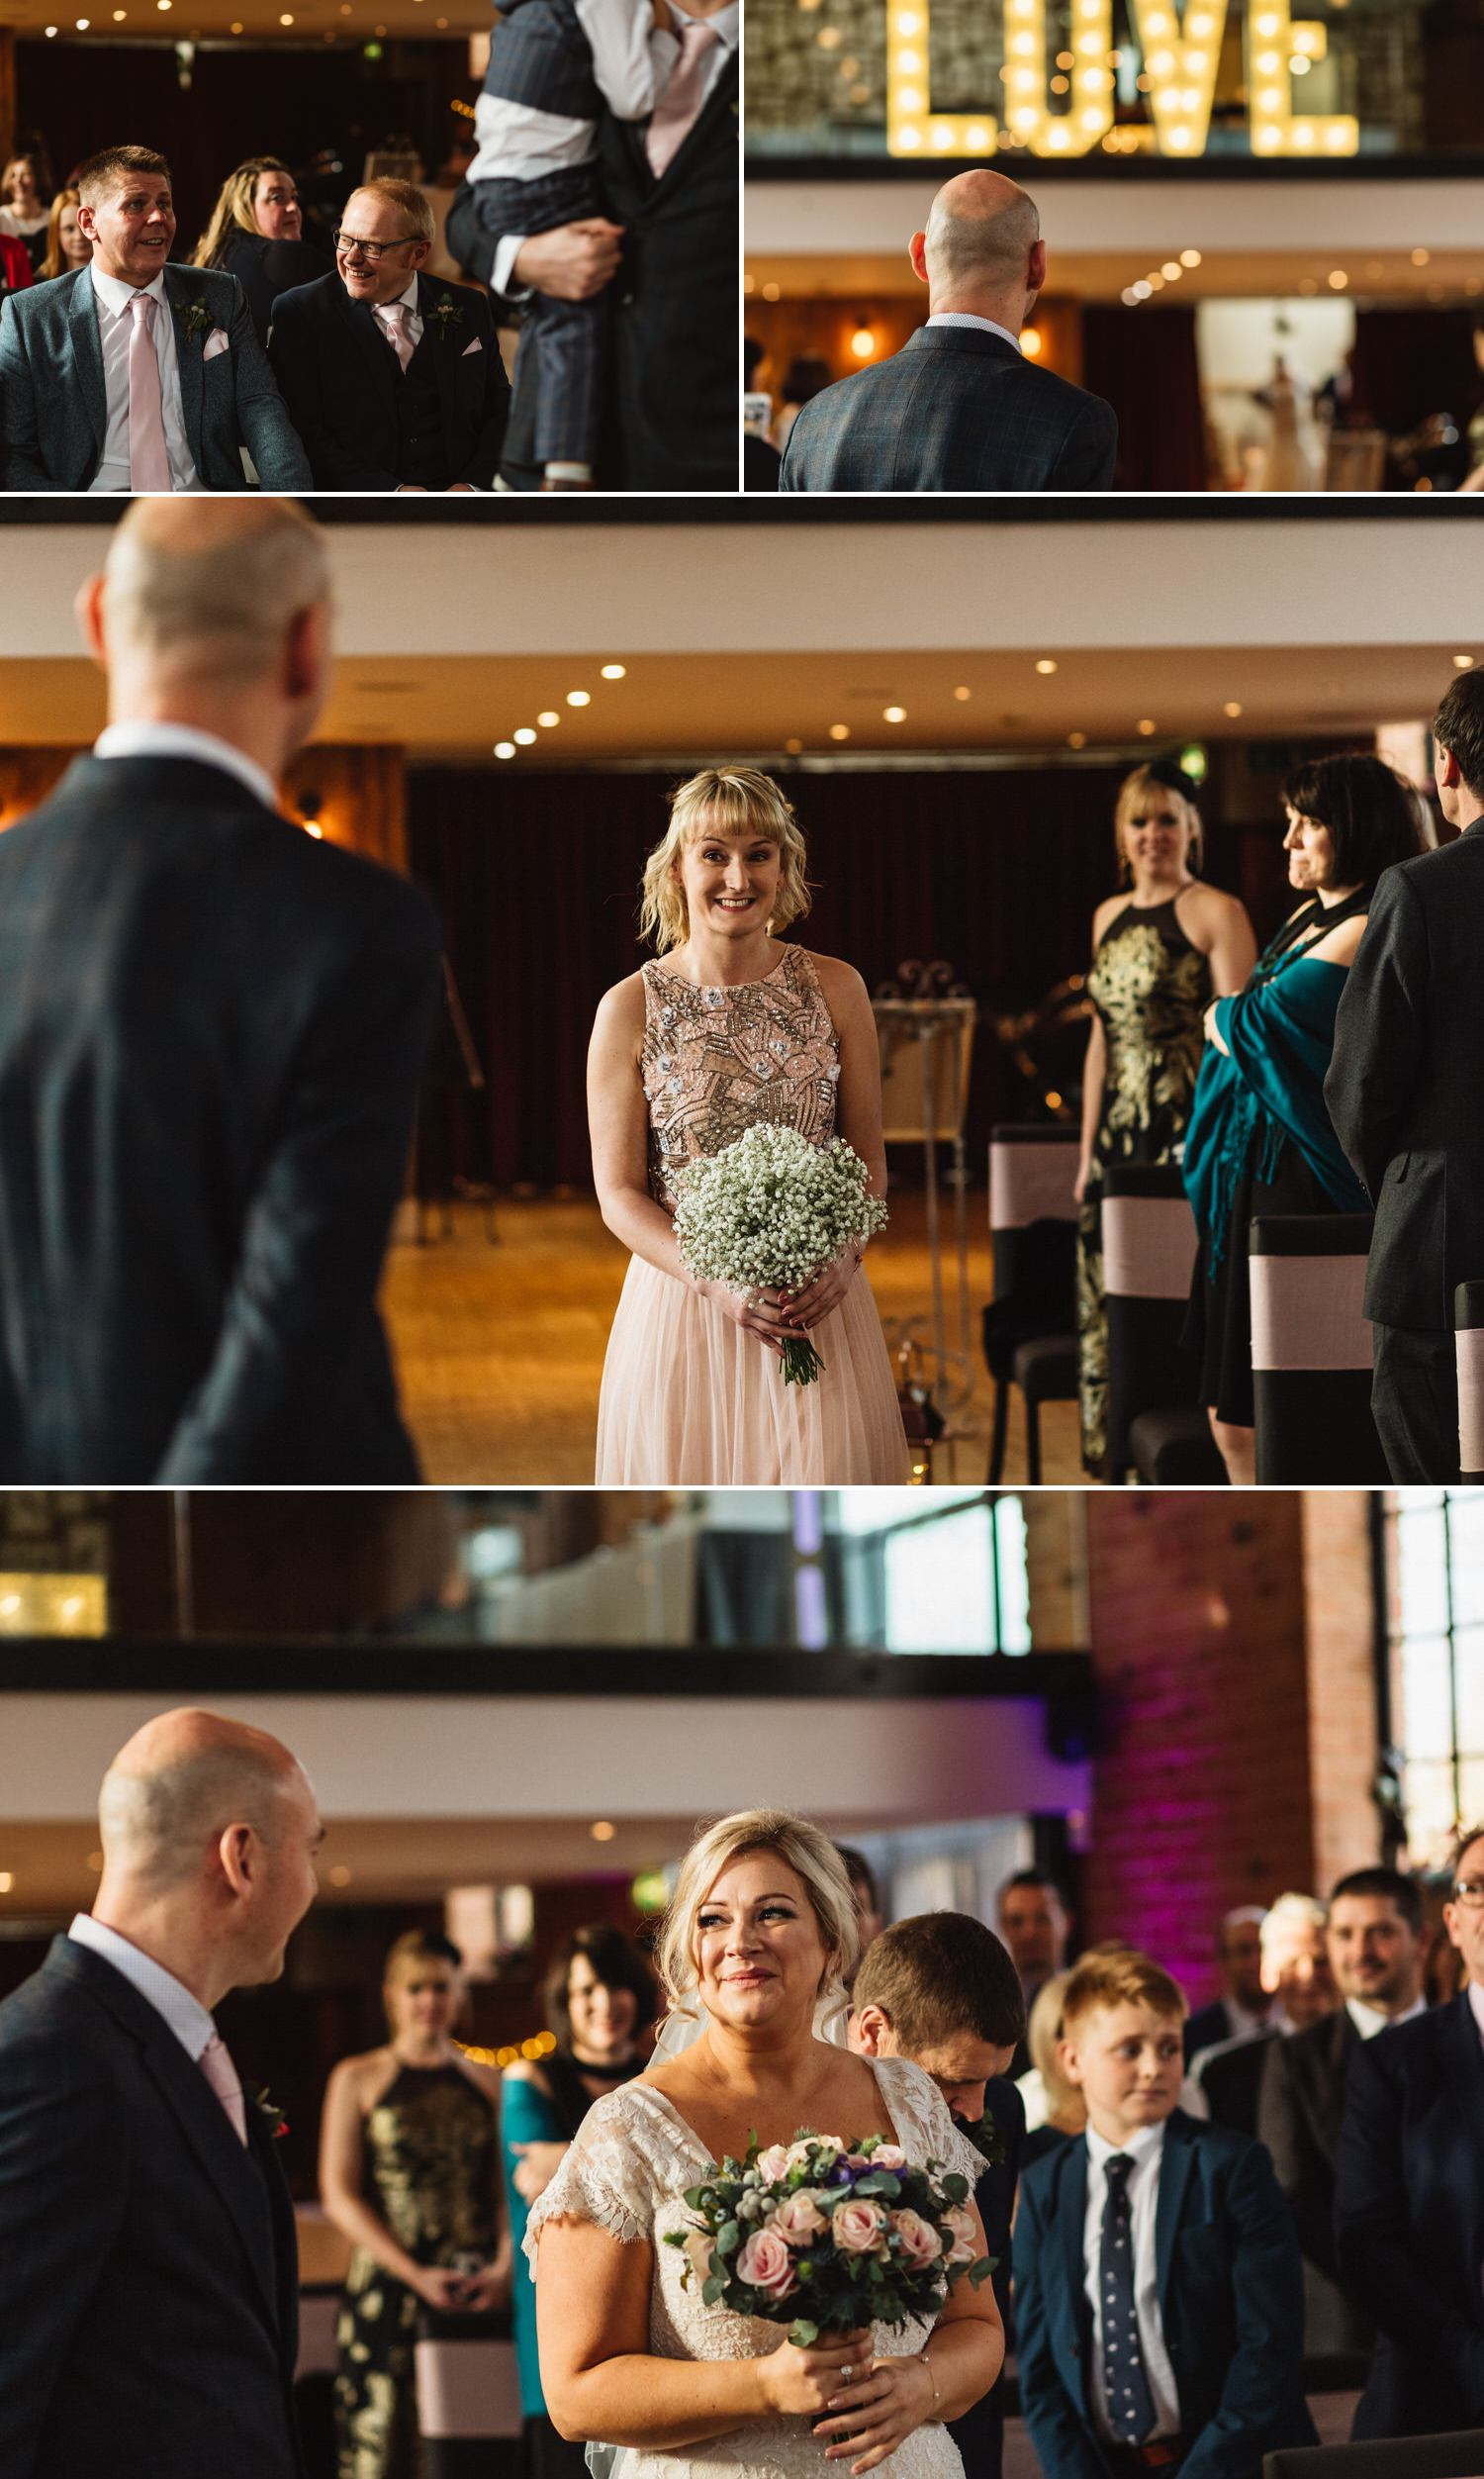 Winter wedding at The Carriage Hall